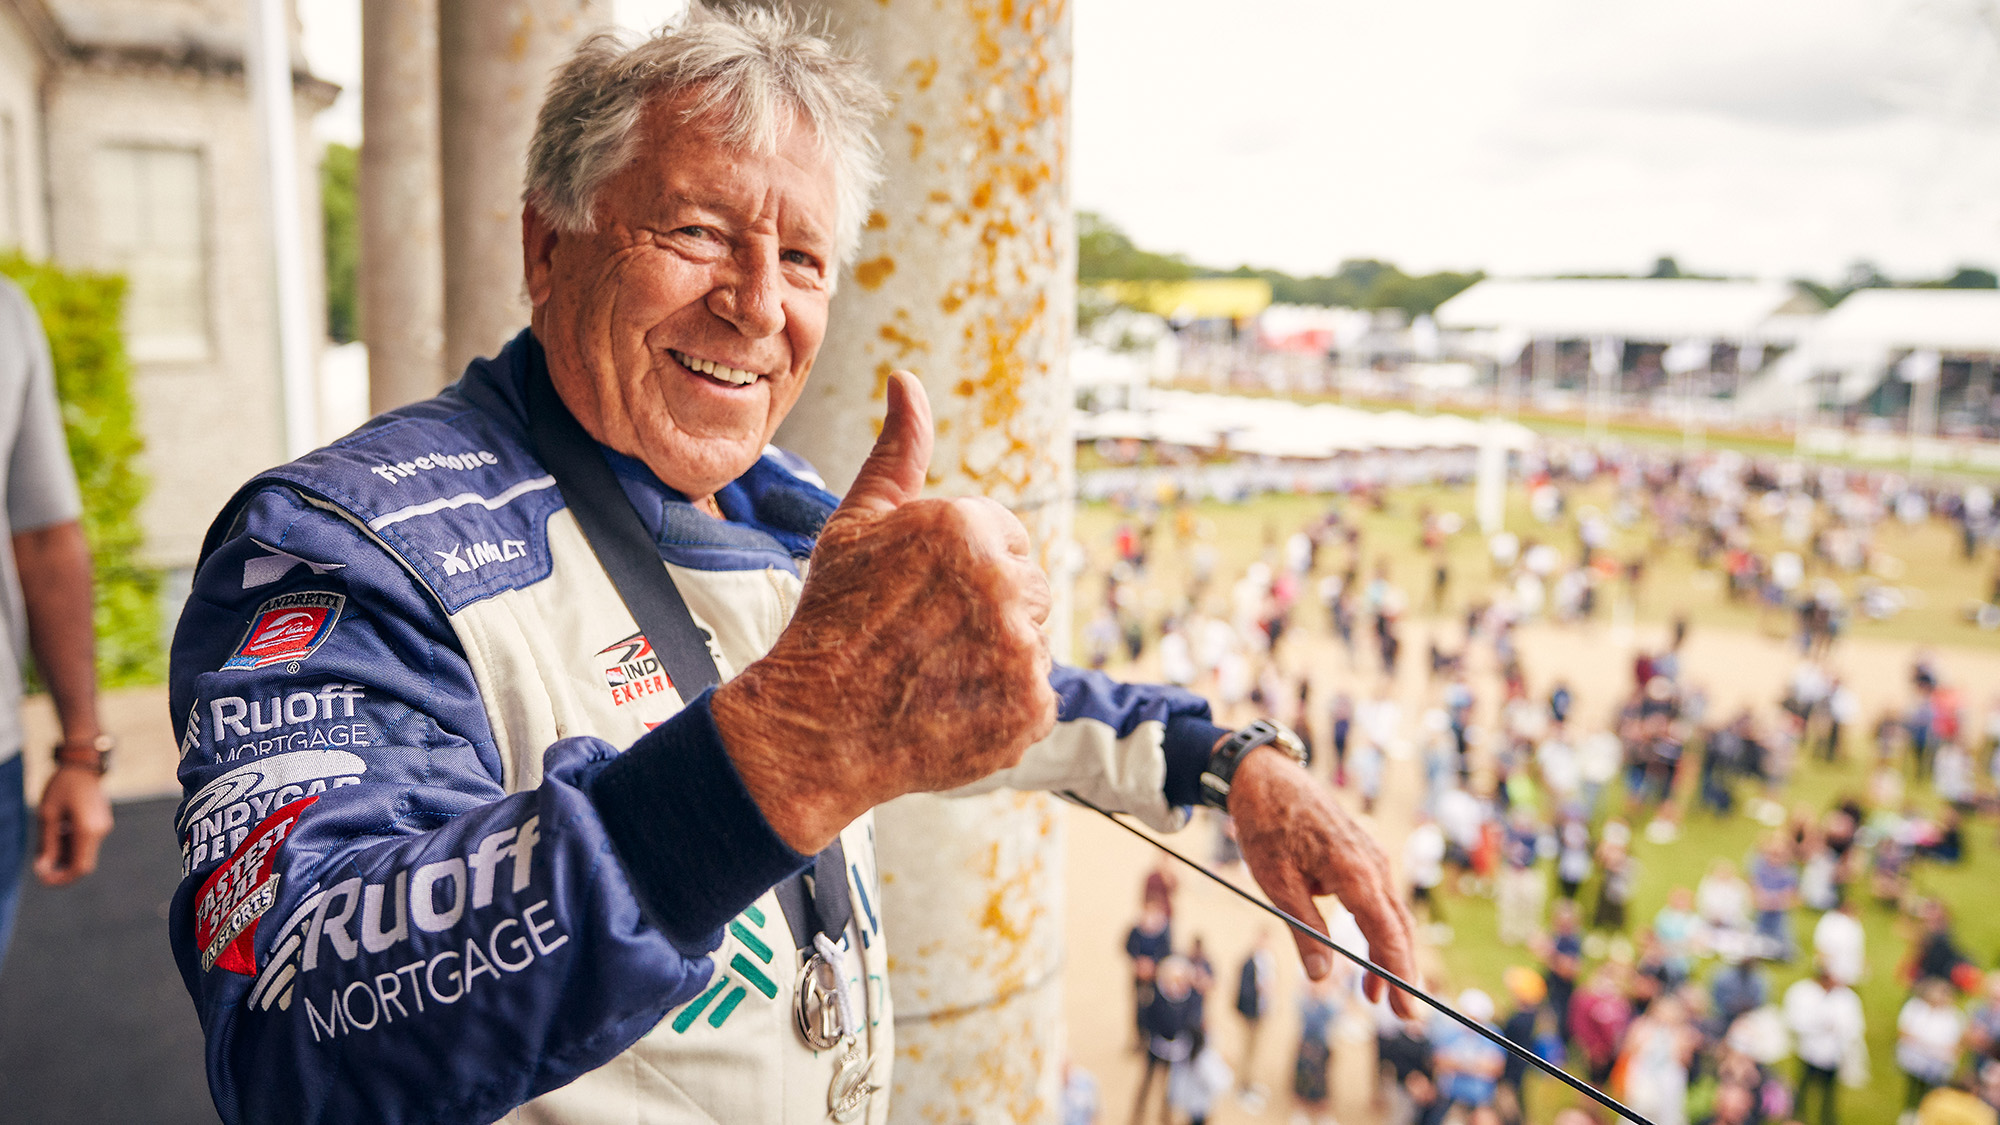 Mario Andretti at the 2021 Goodwood Festival of Speed